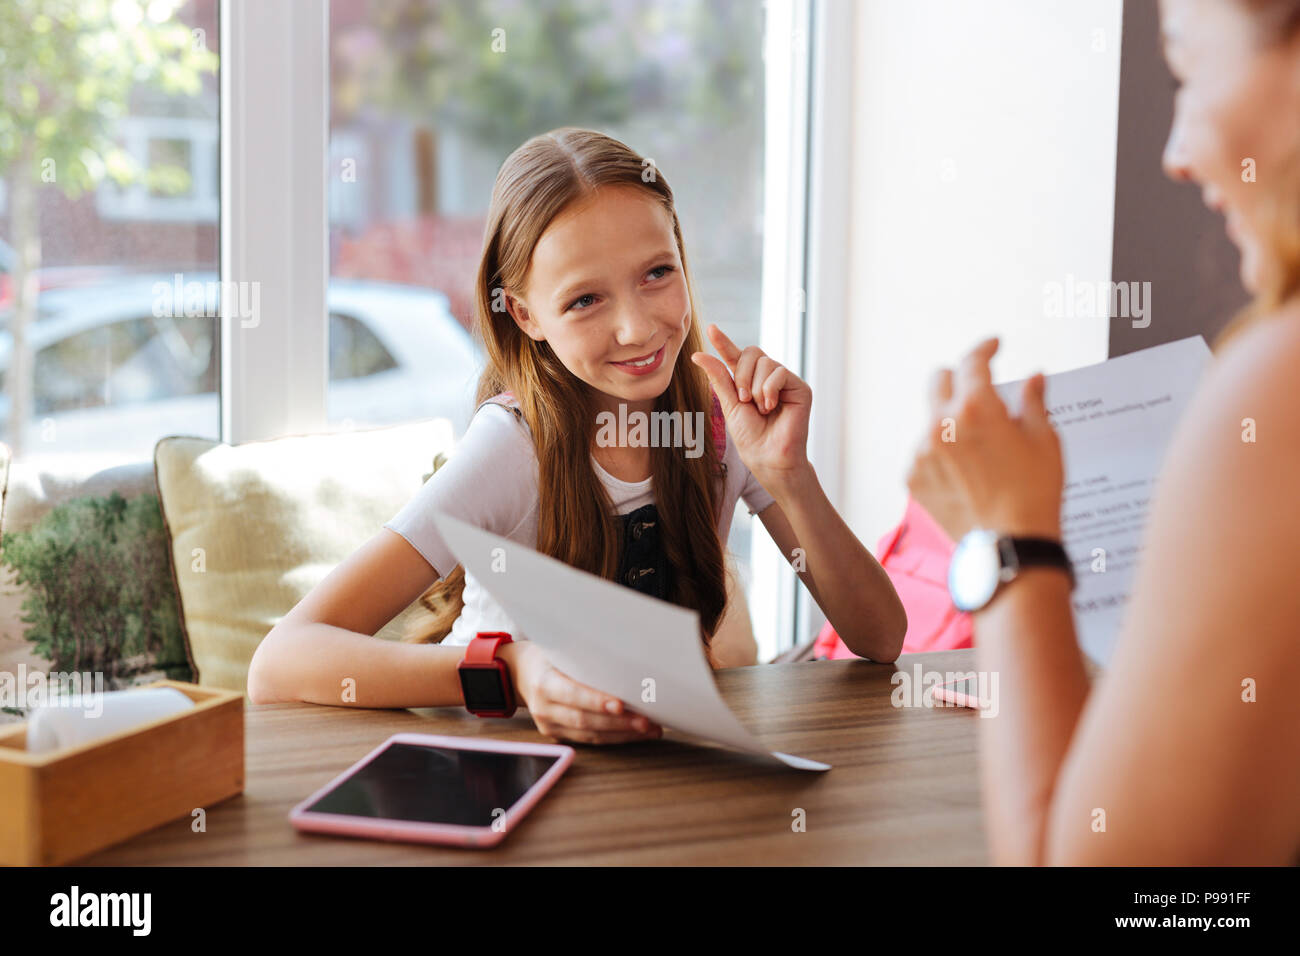 Blonde-haired teenager sitting in cafe with her mother - Stock Image